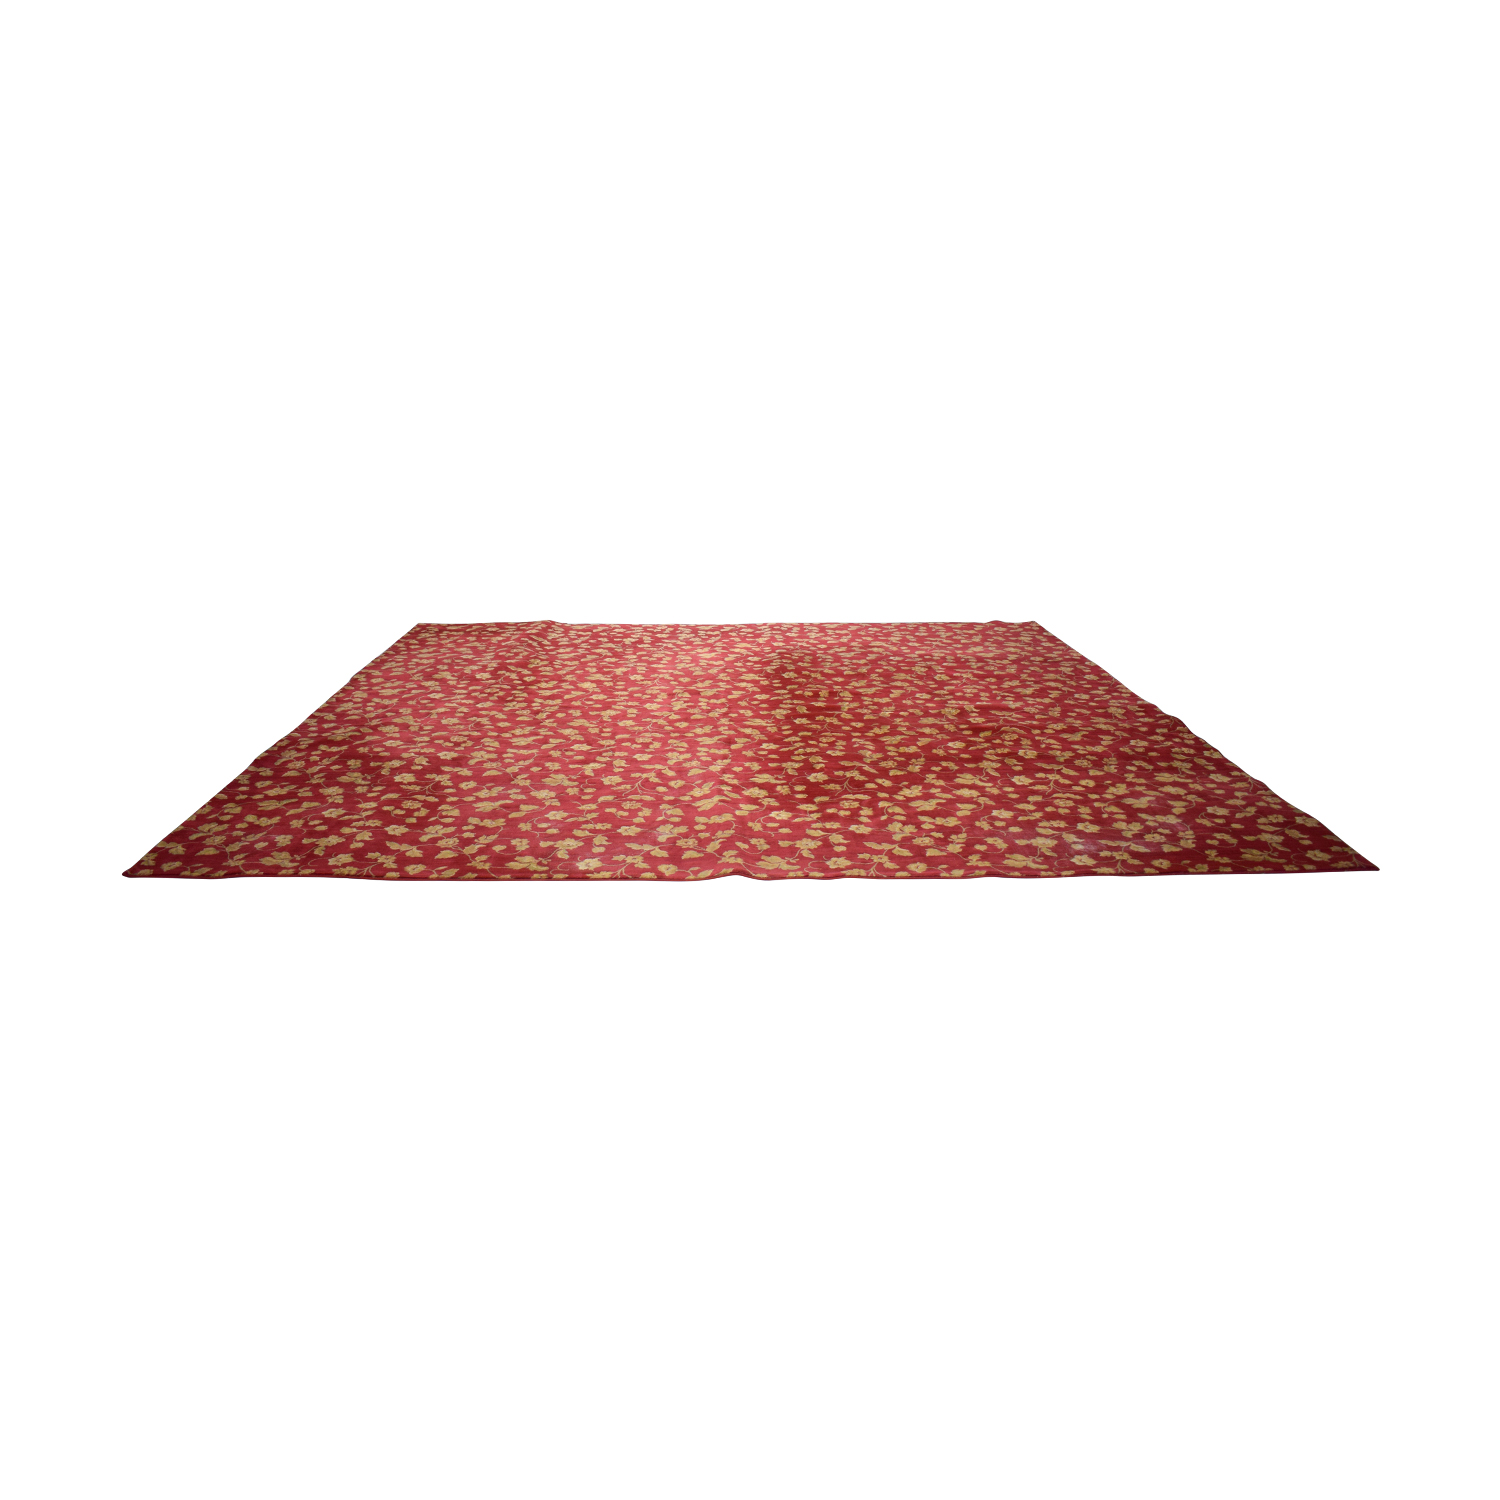 buy Einstein Moomjy Einstein Moomjy Custom Red and Gold Floral Rug online